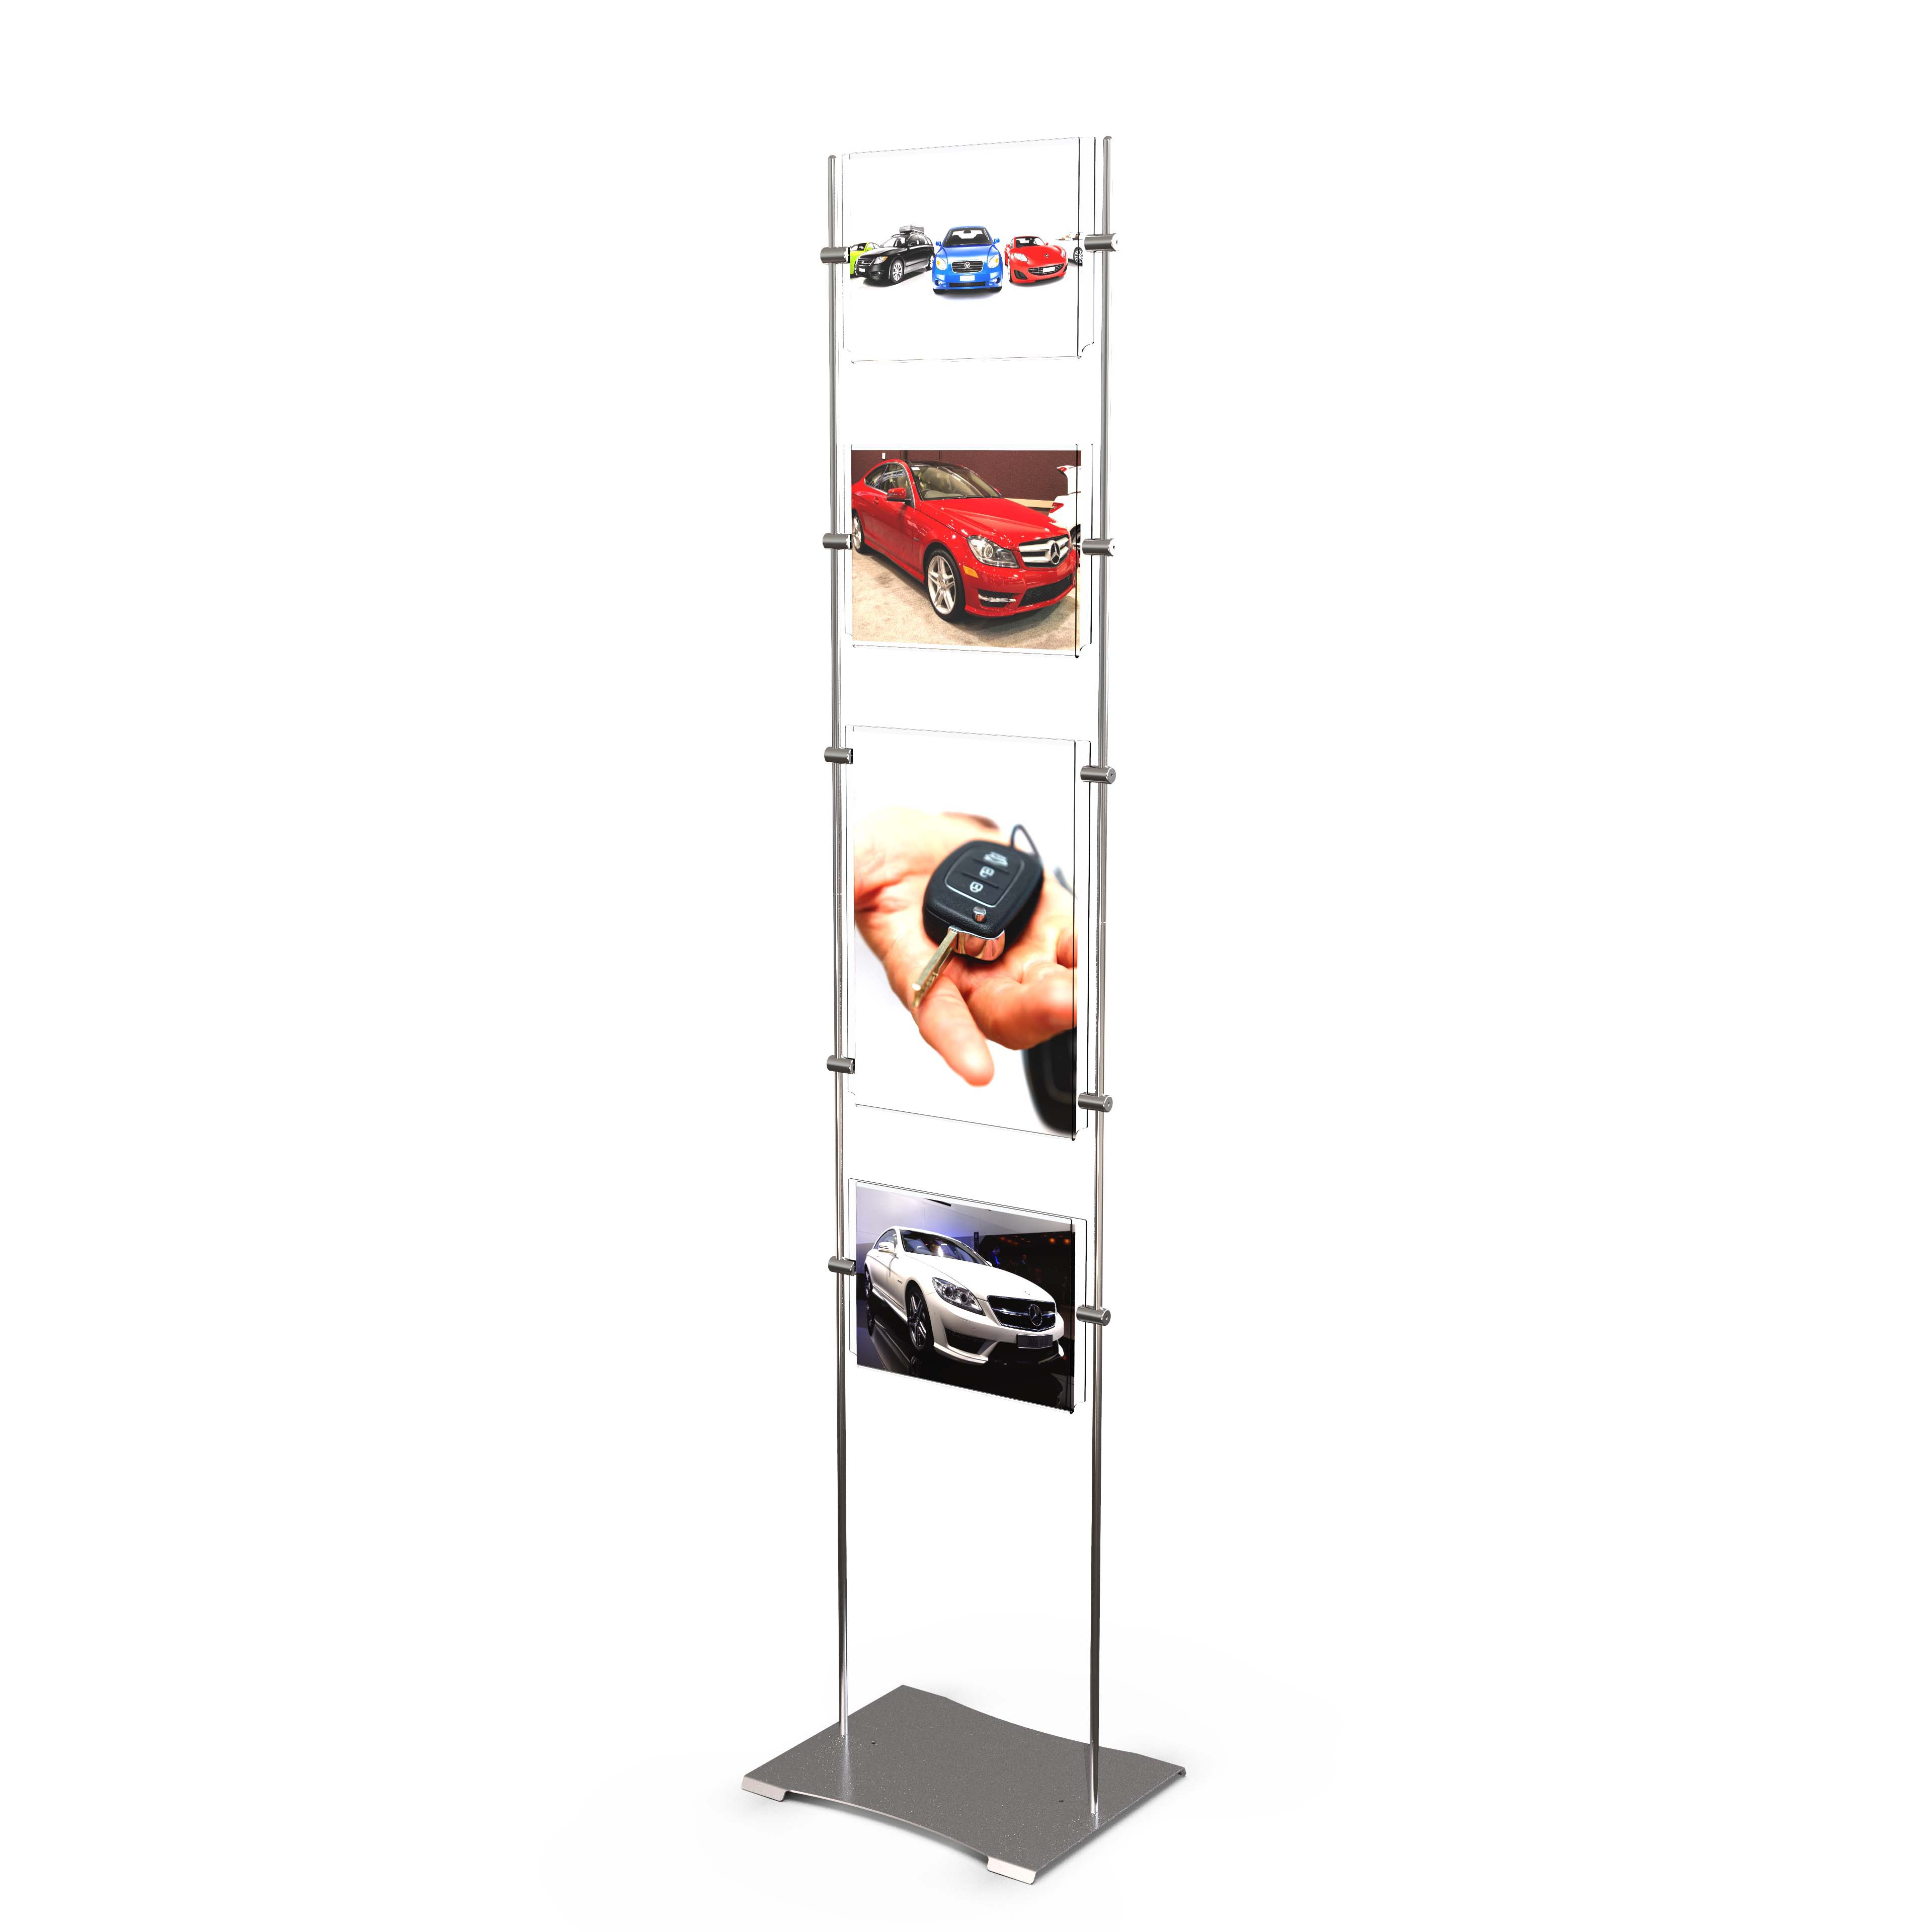 Horizontal, vertical or mixed A4 display totem